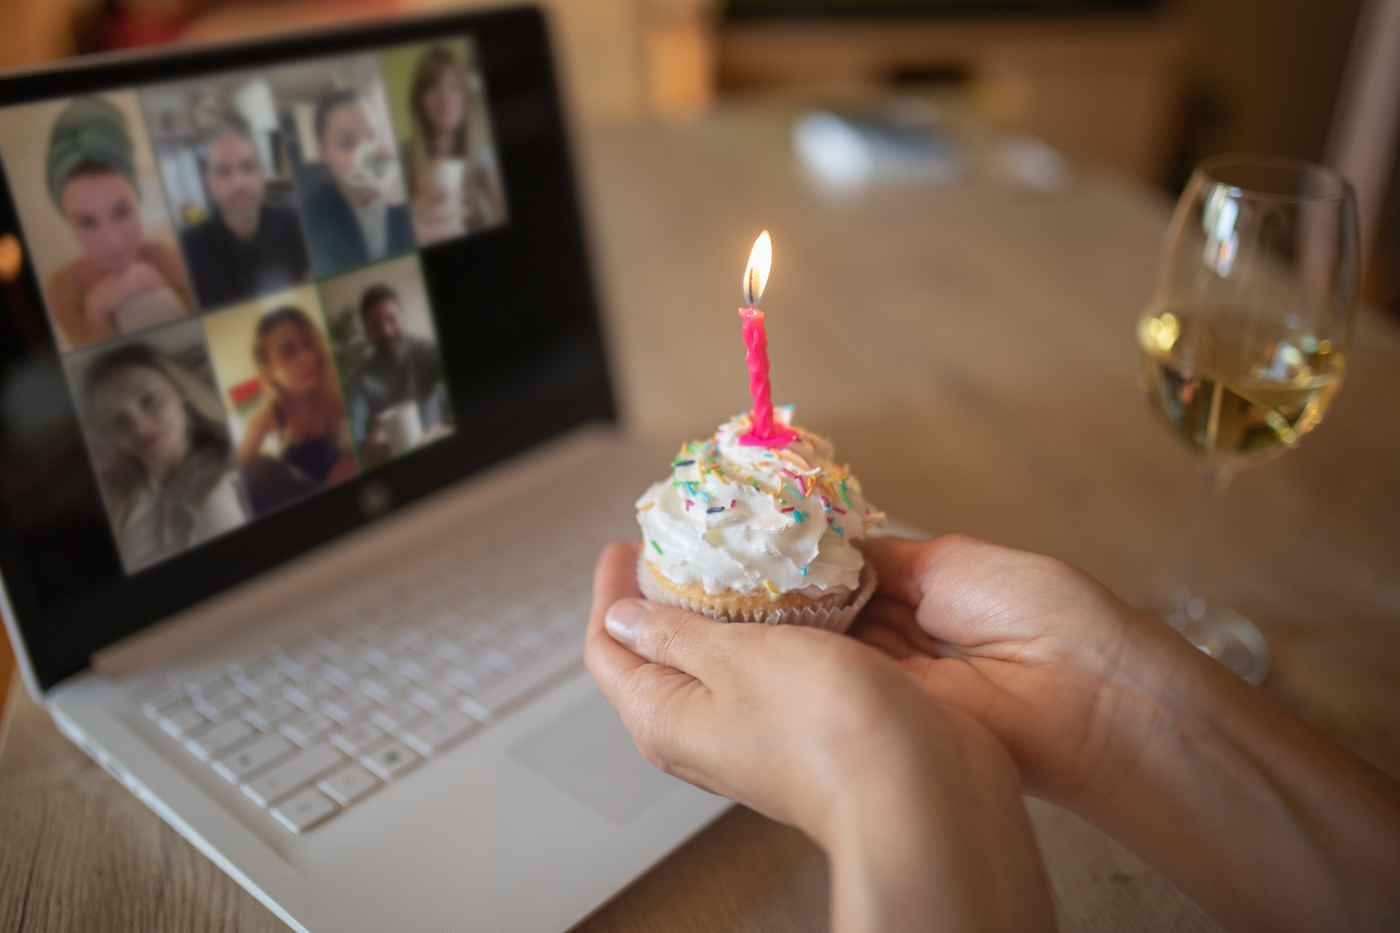 How To Celebrate A Birthday While Social Distancing Avenue Calgary